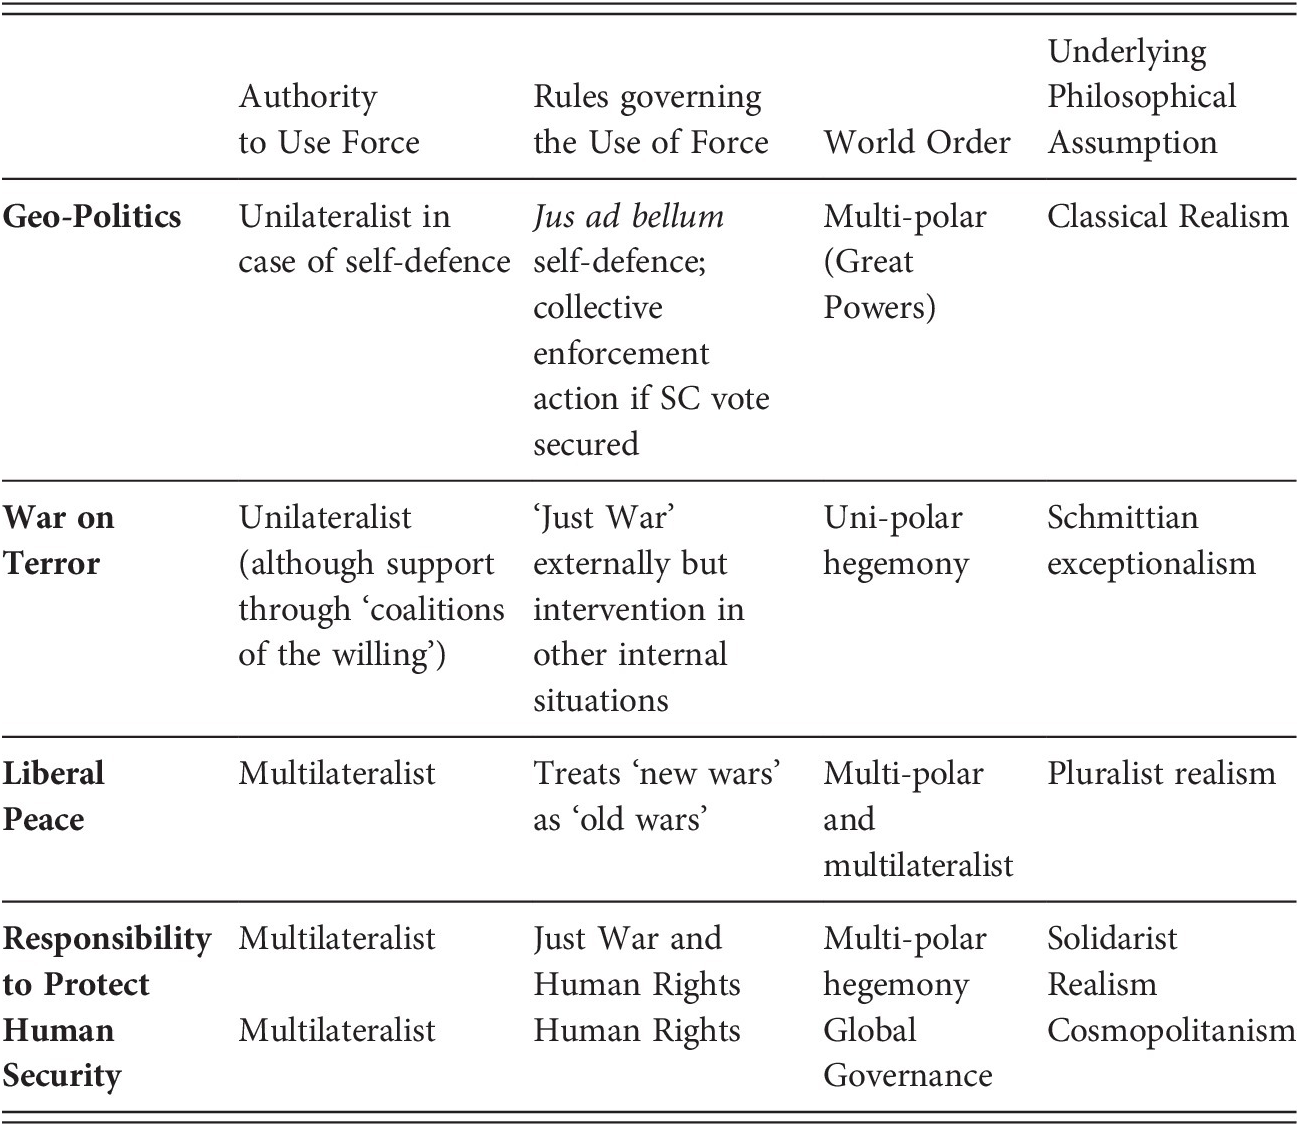 Conceptual Framework (Part I) - International Law and New Wars